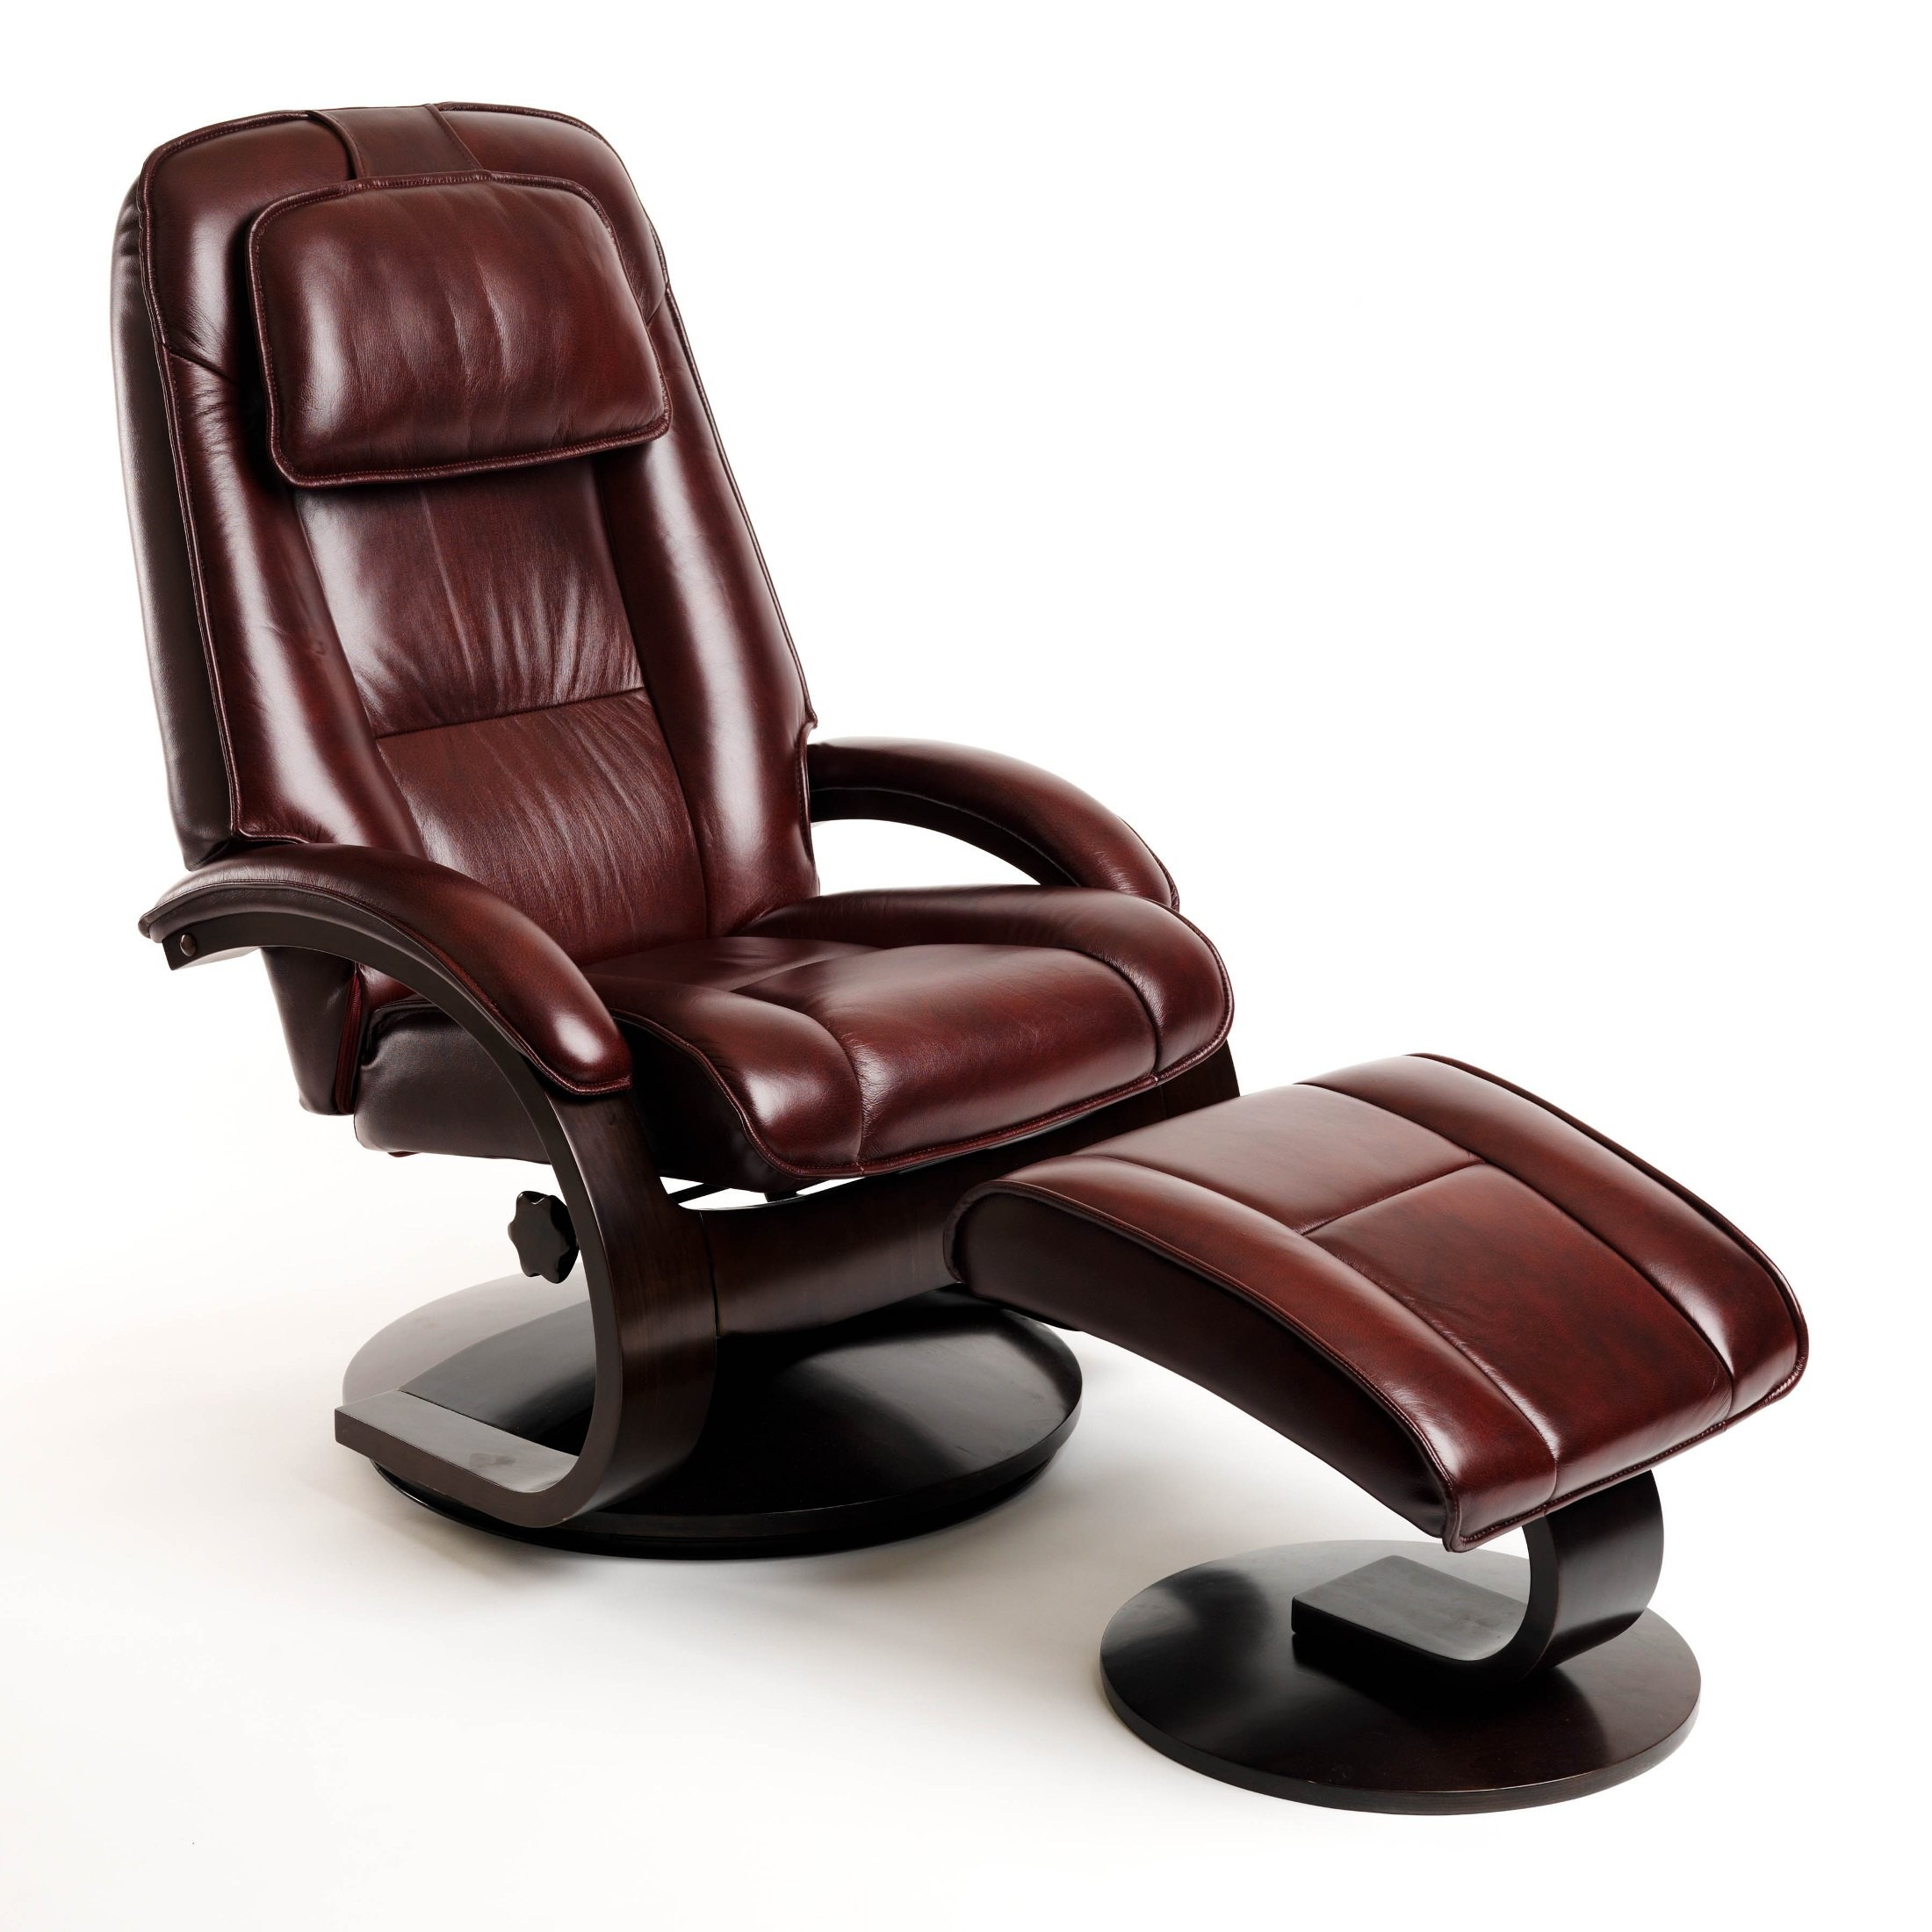 recliner chair with ottoman manufacturers covers and table cloth hire oslo merlot burgundy top grain leather swivel